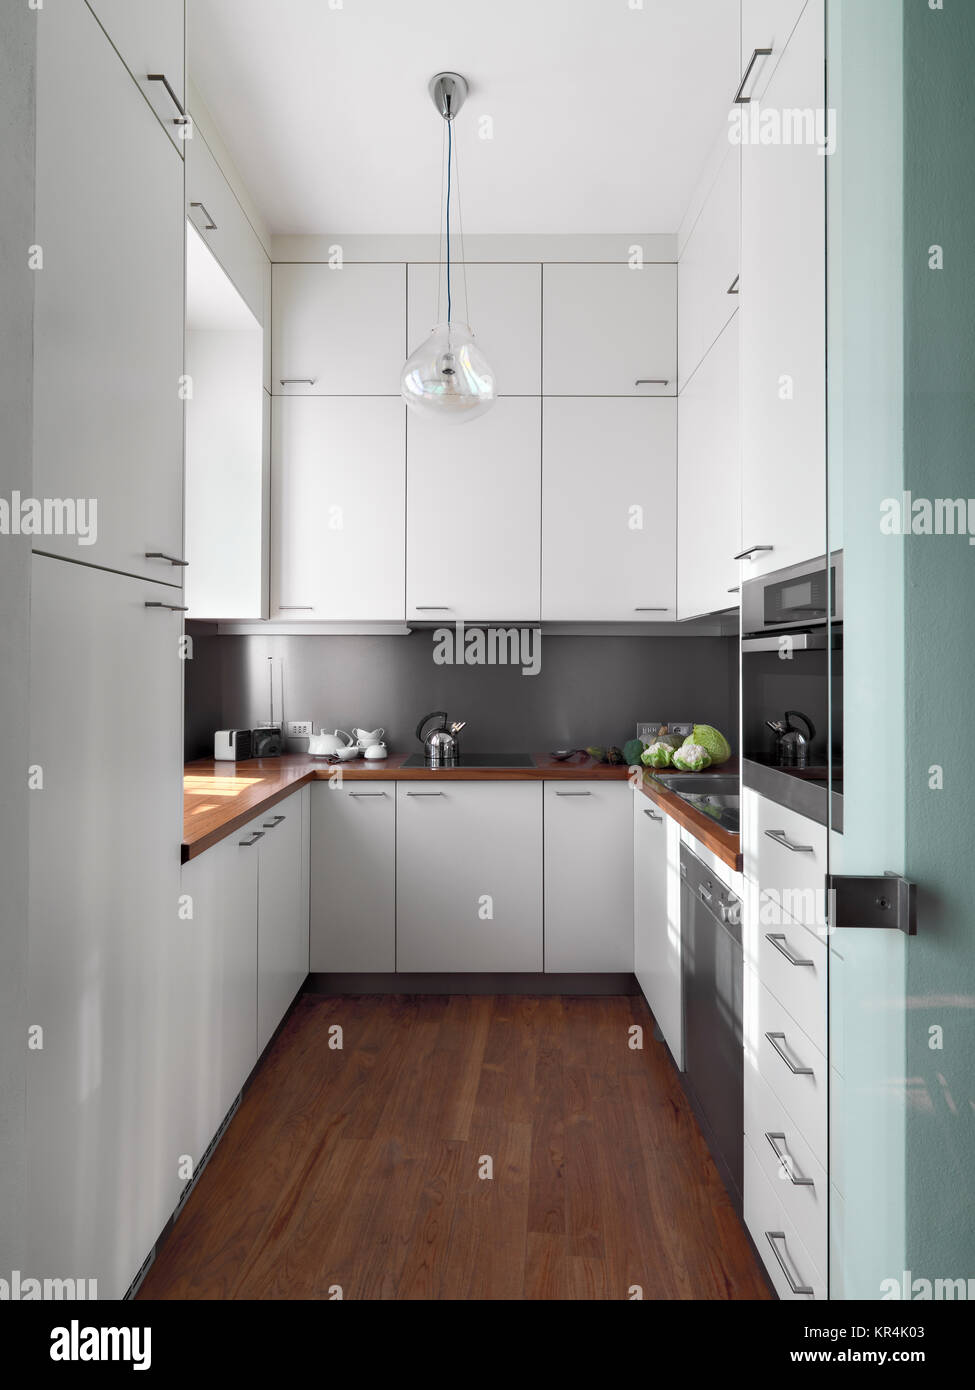 vertical view of a modern kitchen Stock Photo - Alamy